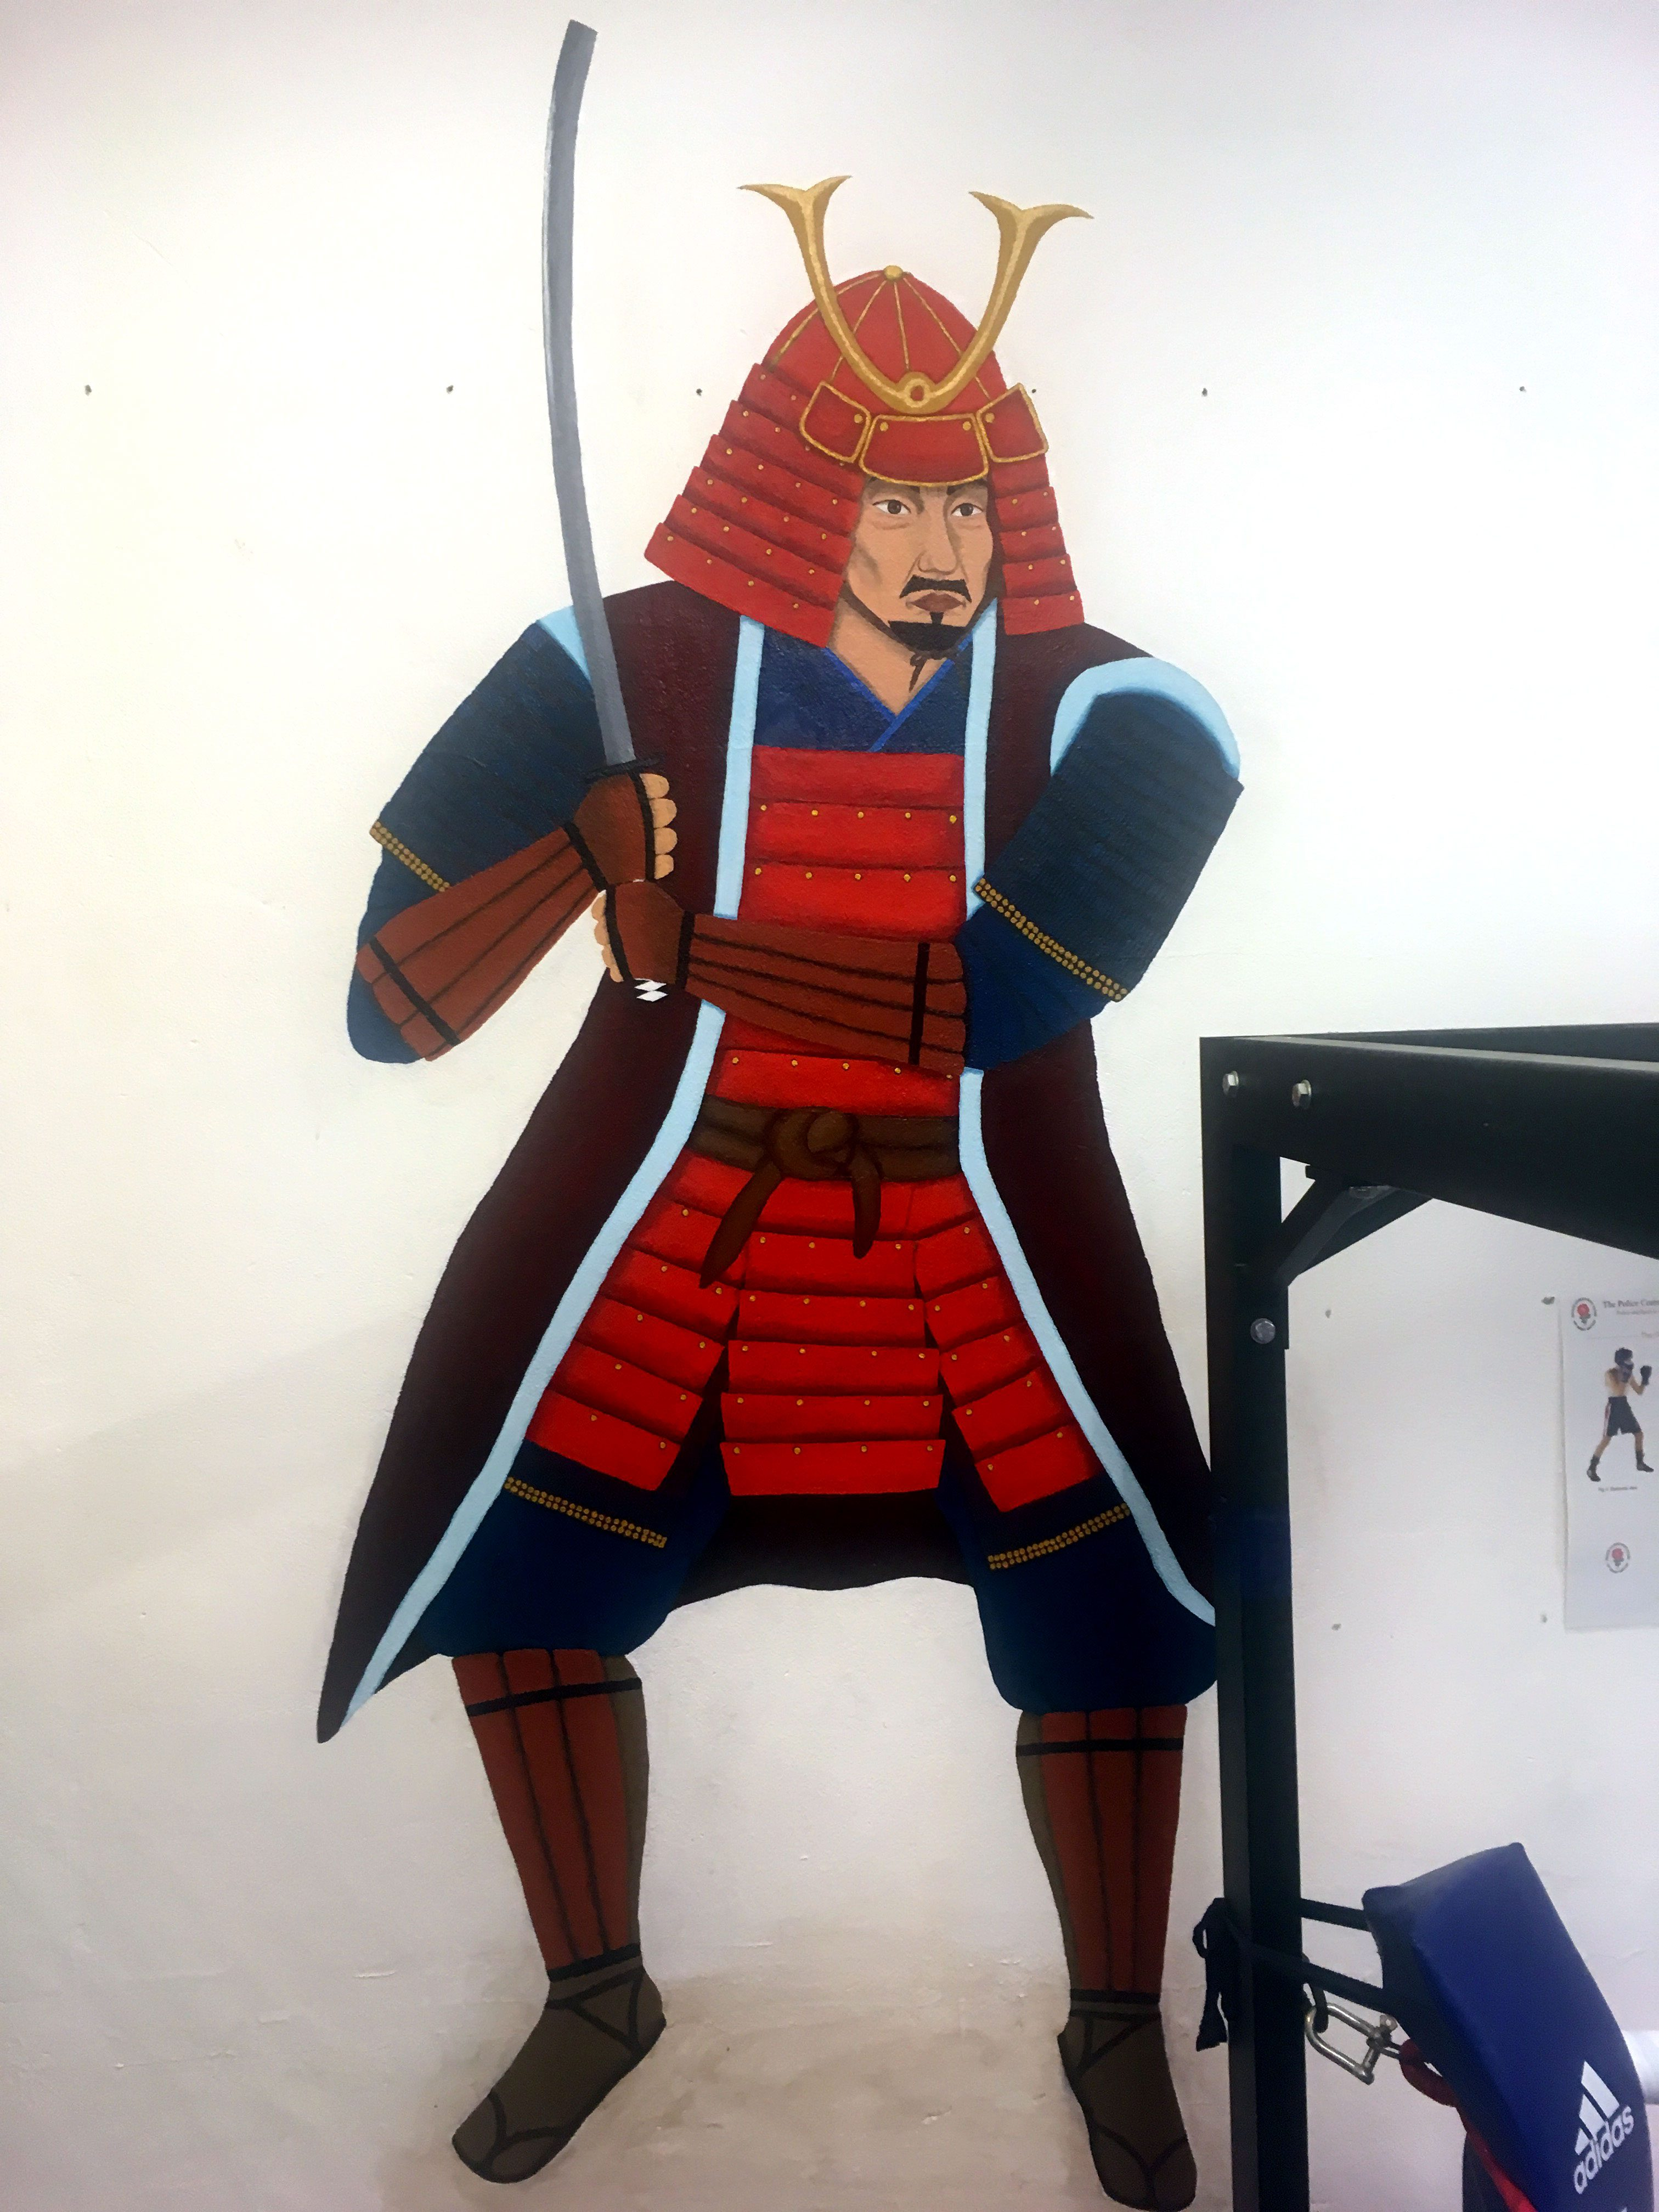 Samurai wall mural for Poole martial arts and fitness gym, Dorset, UK